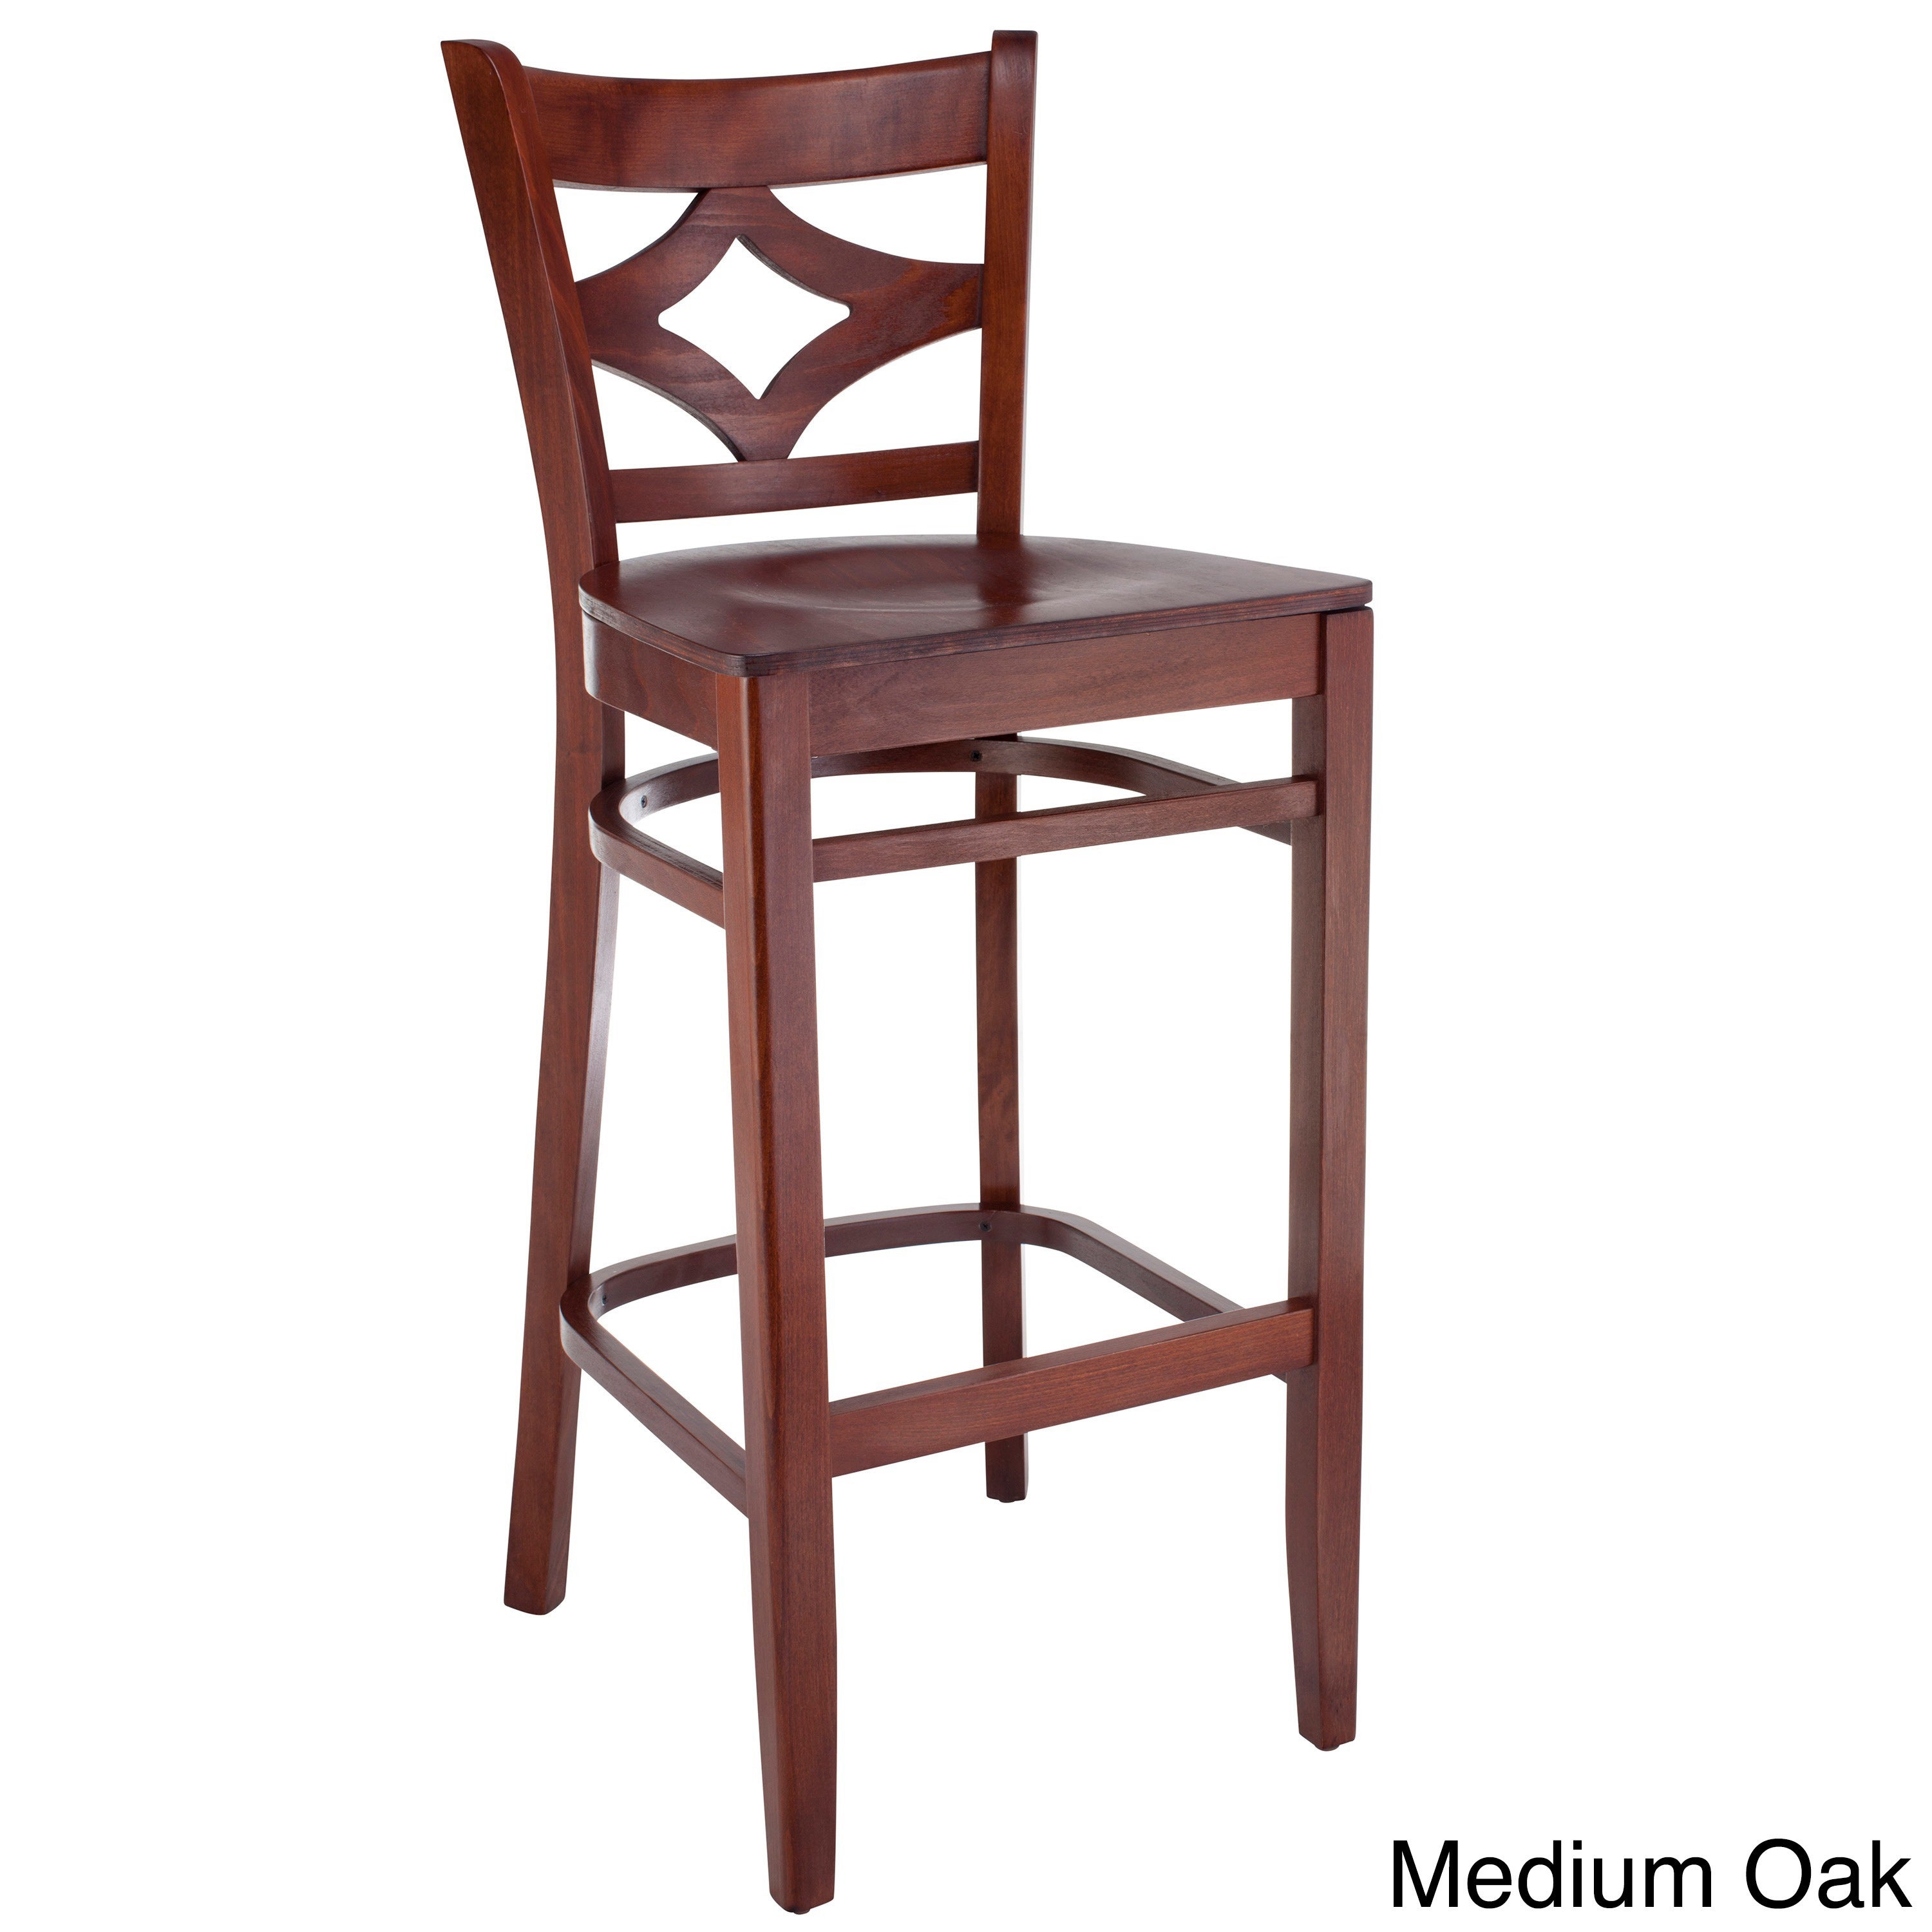 Medium Oak Dining Furniture at Overstockcom : Vegas Wood Bar Stool 2ca99216 3317 45c5 a325 66b56cce3211 from www.overstock.com size 3000 x 3000 jpeg 751kB